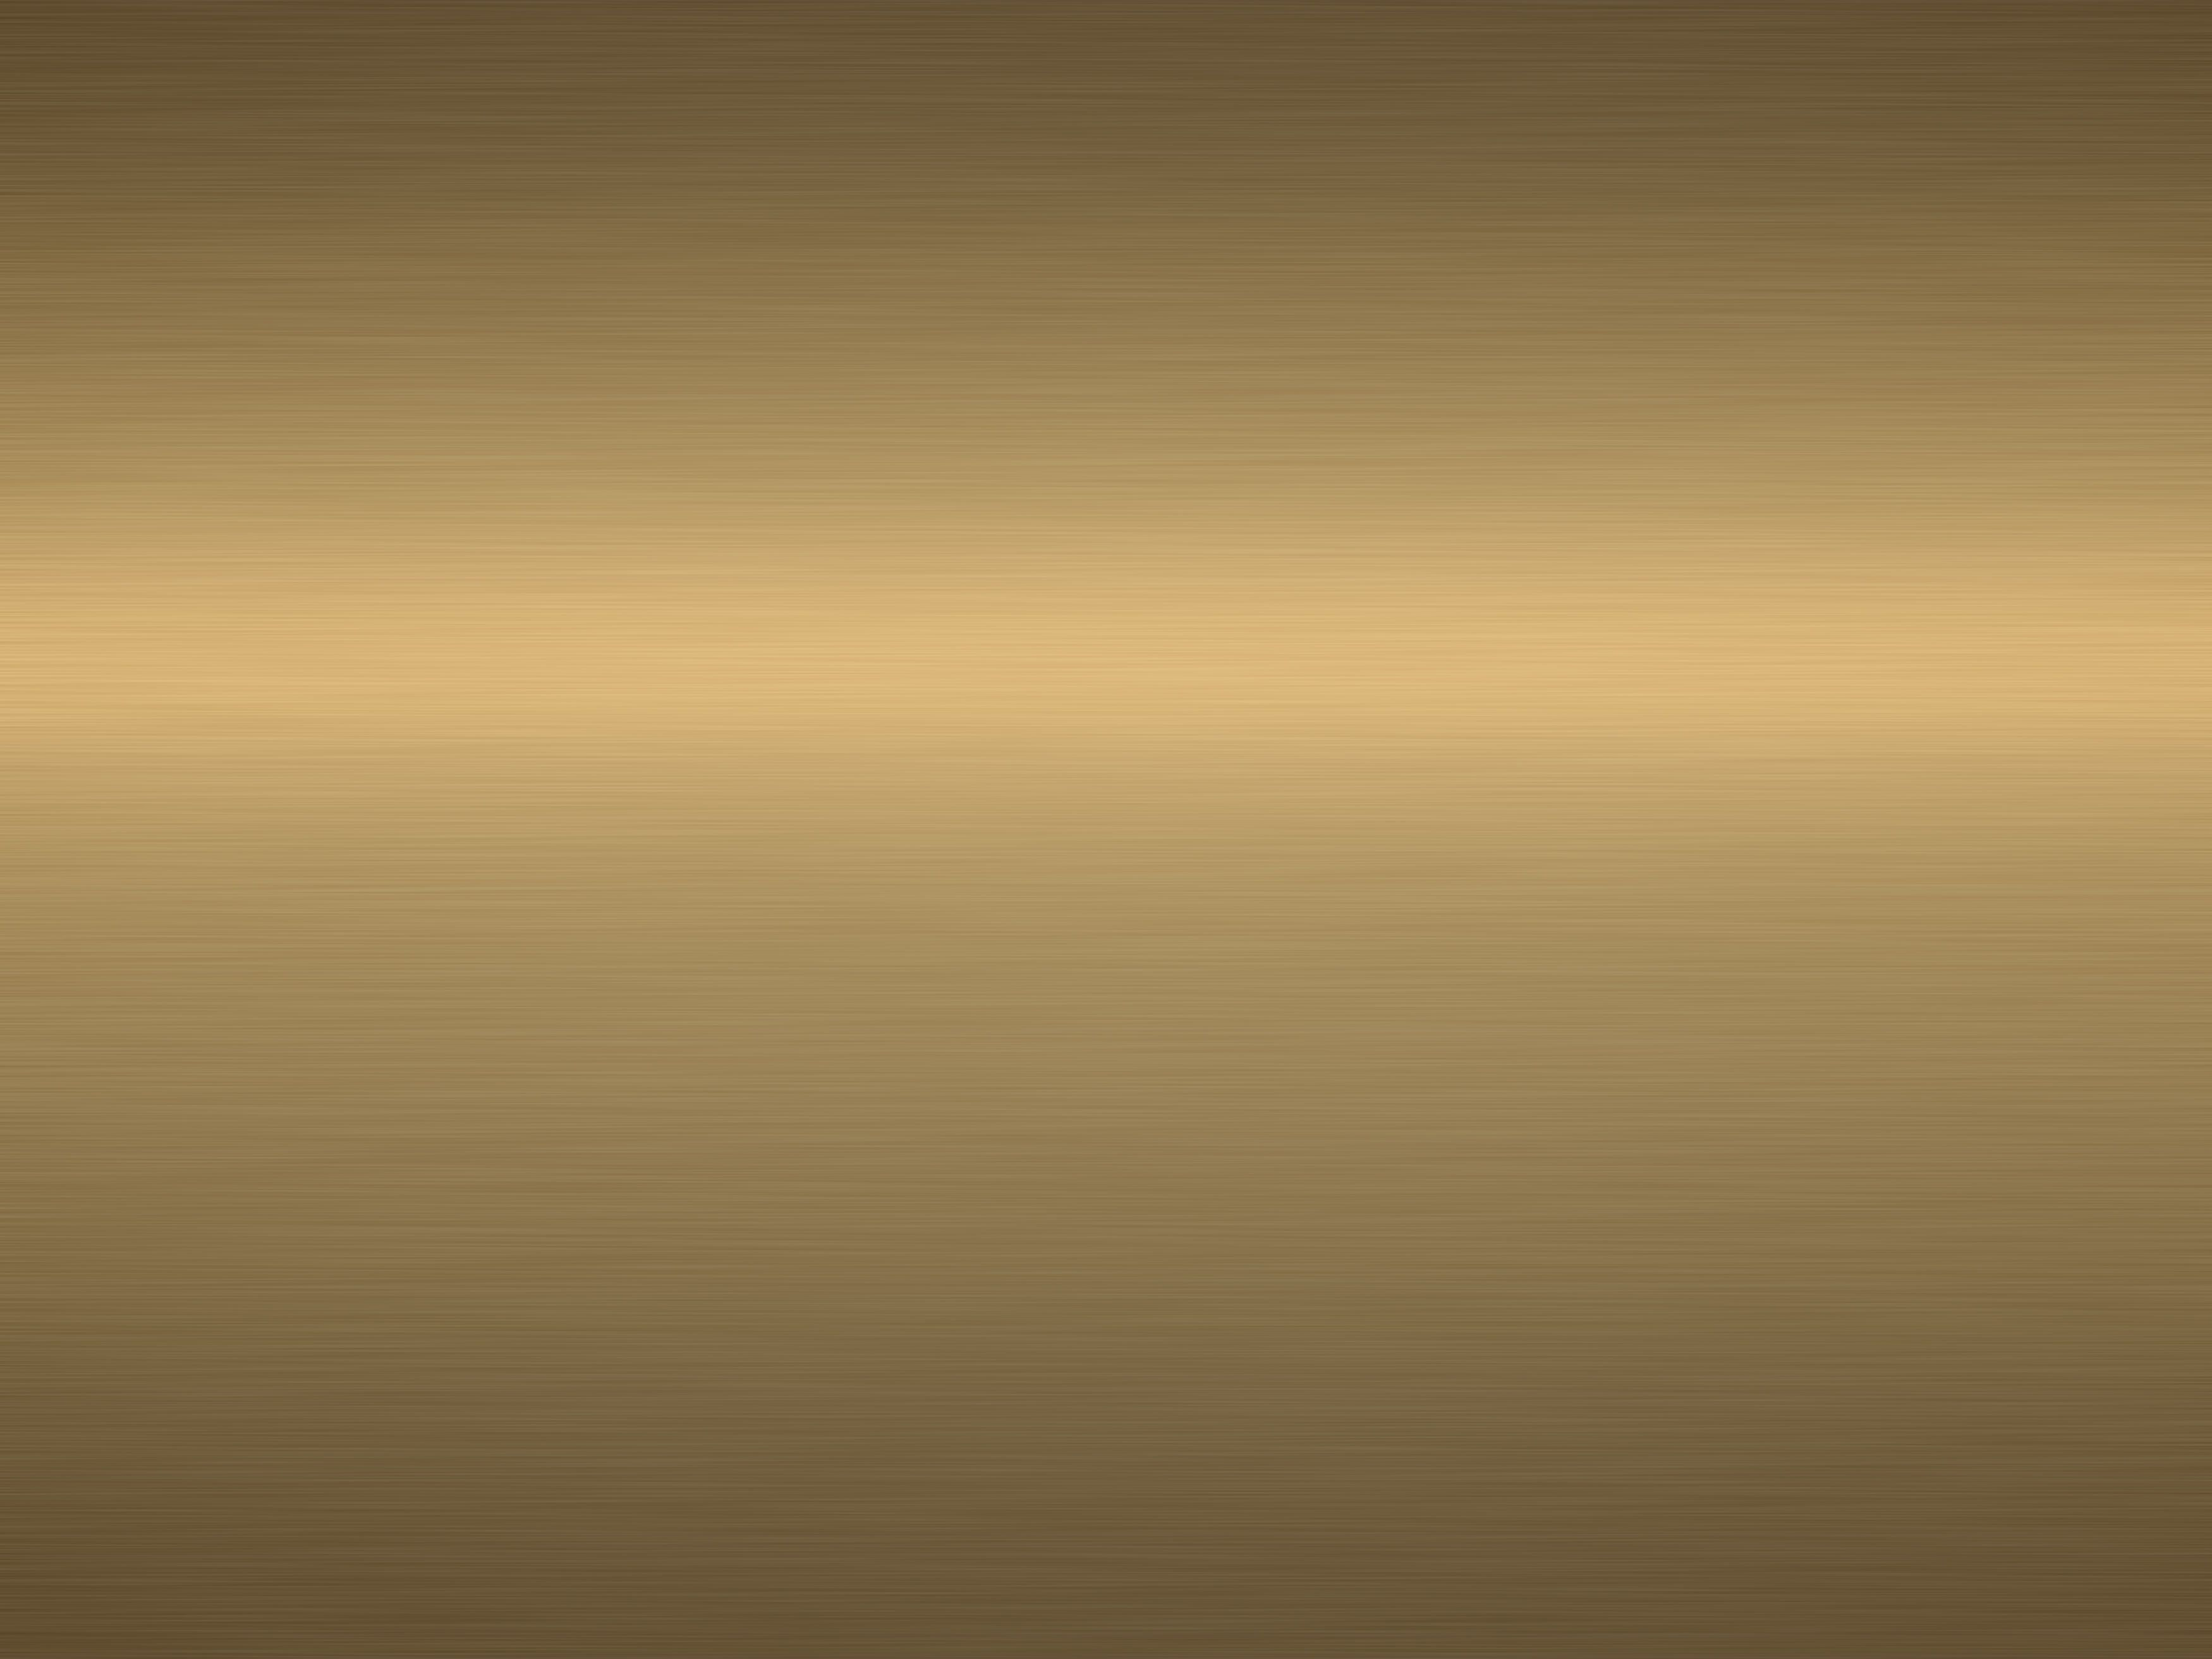 Bronze Texture Or Brushed Gold Background Www Myfreetextures Com